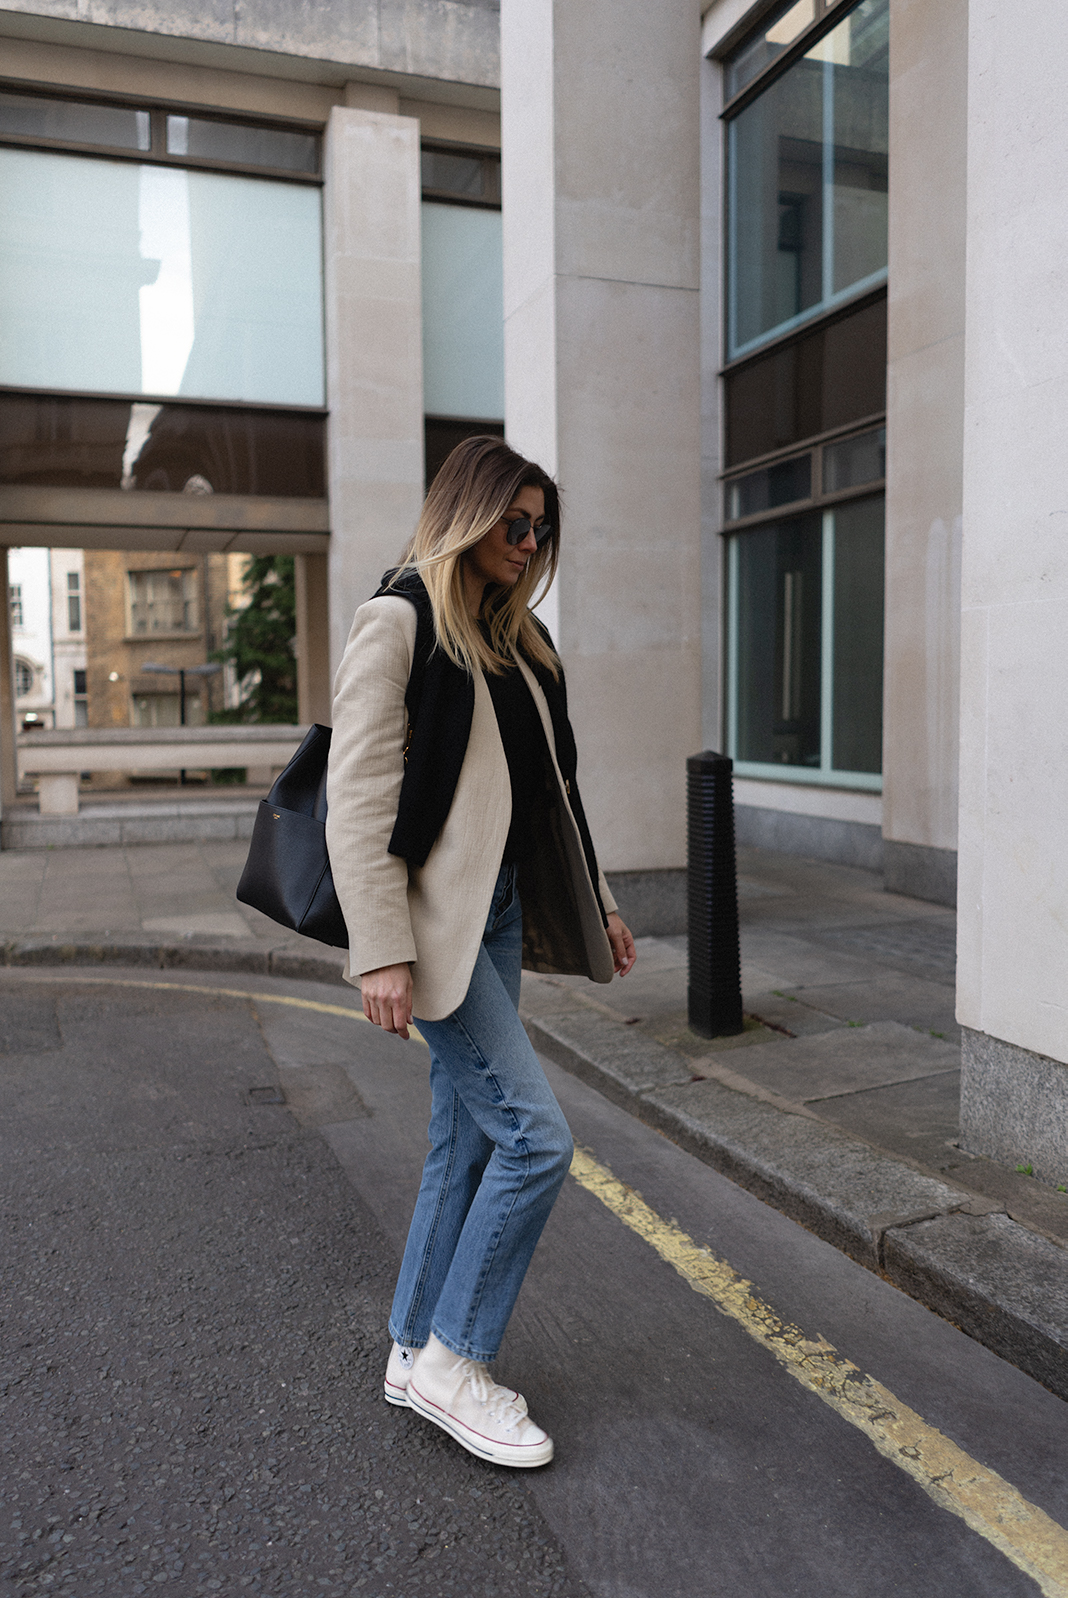 Emma Hill wears black jumper over shoulders, beige linen blazer, black leather Celine Seau Sangle bucket bag, straight leg jeans, Converse Chuck 70 in parchment. Casual but chic Spring outfit